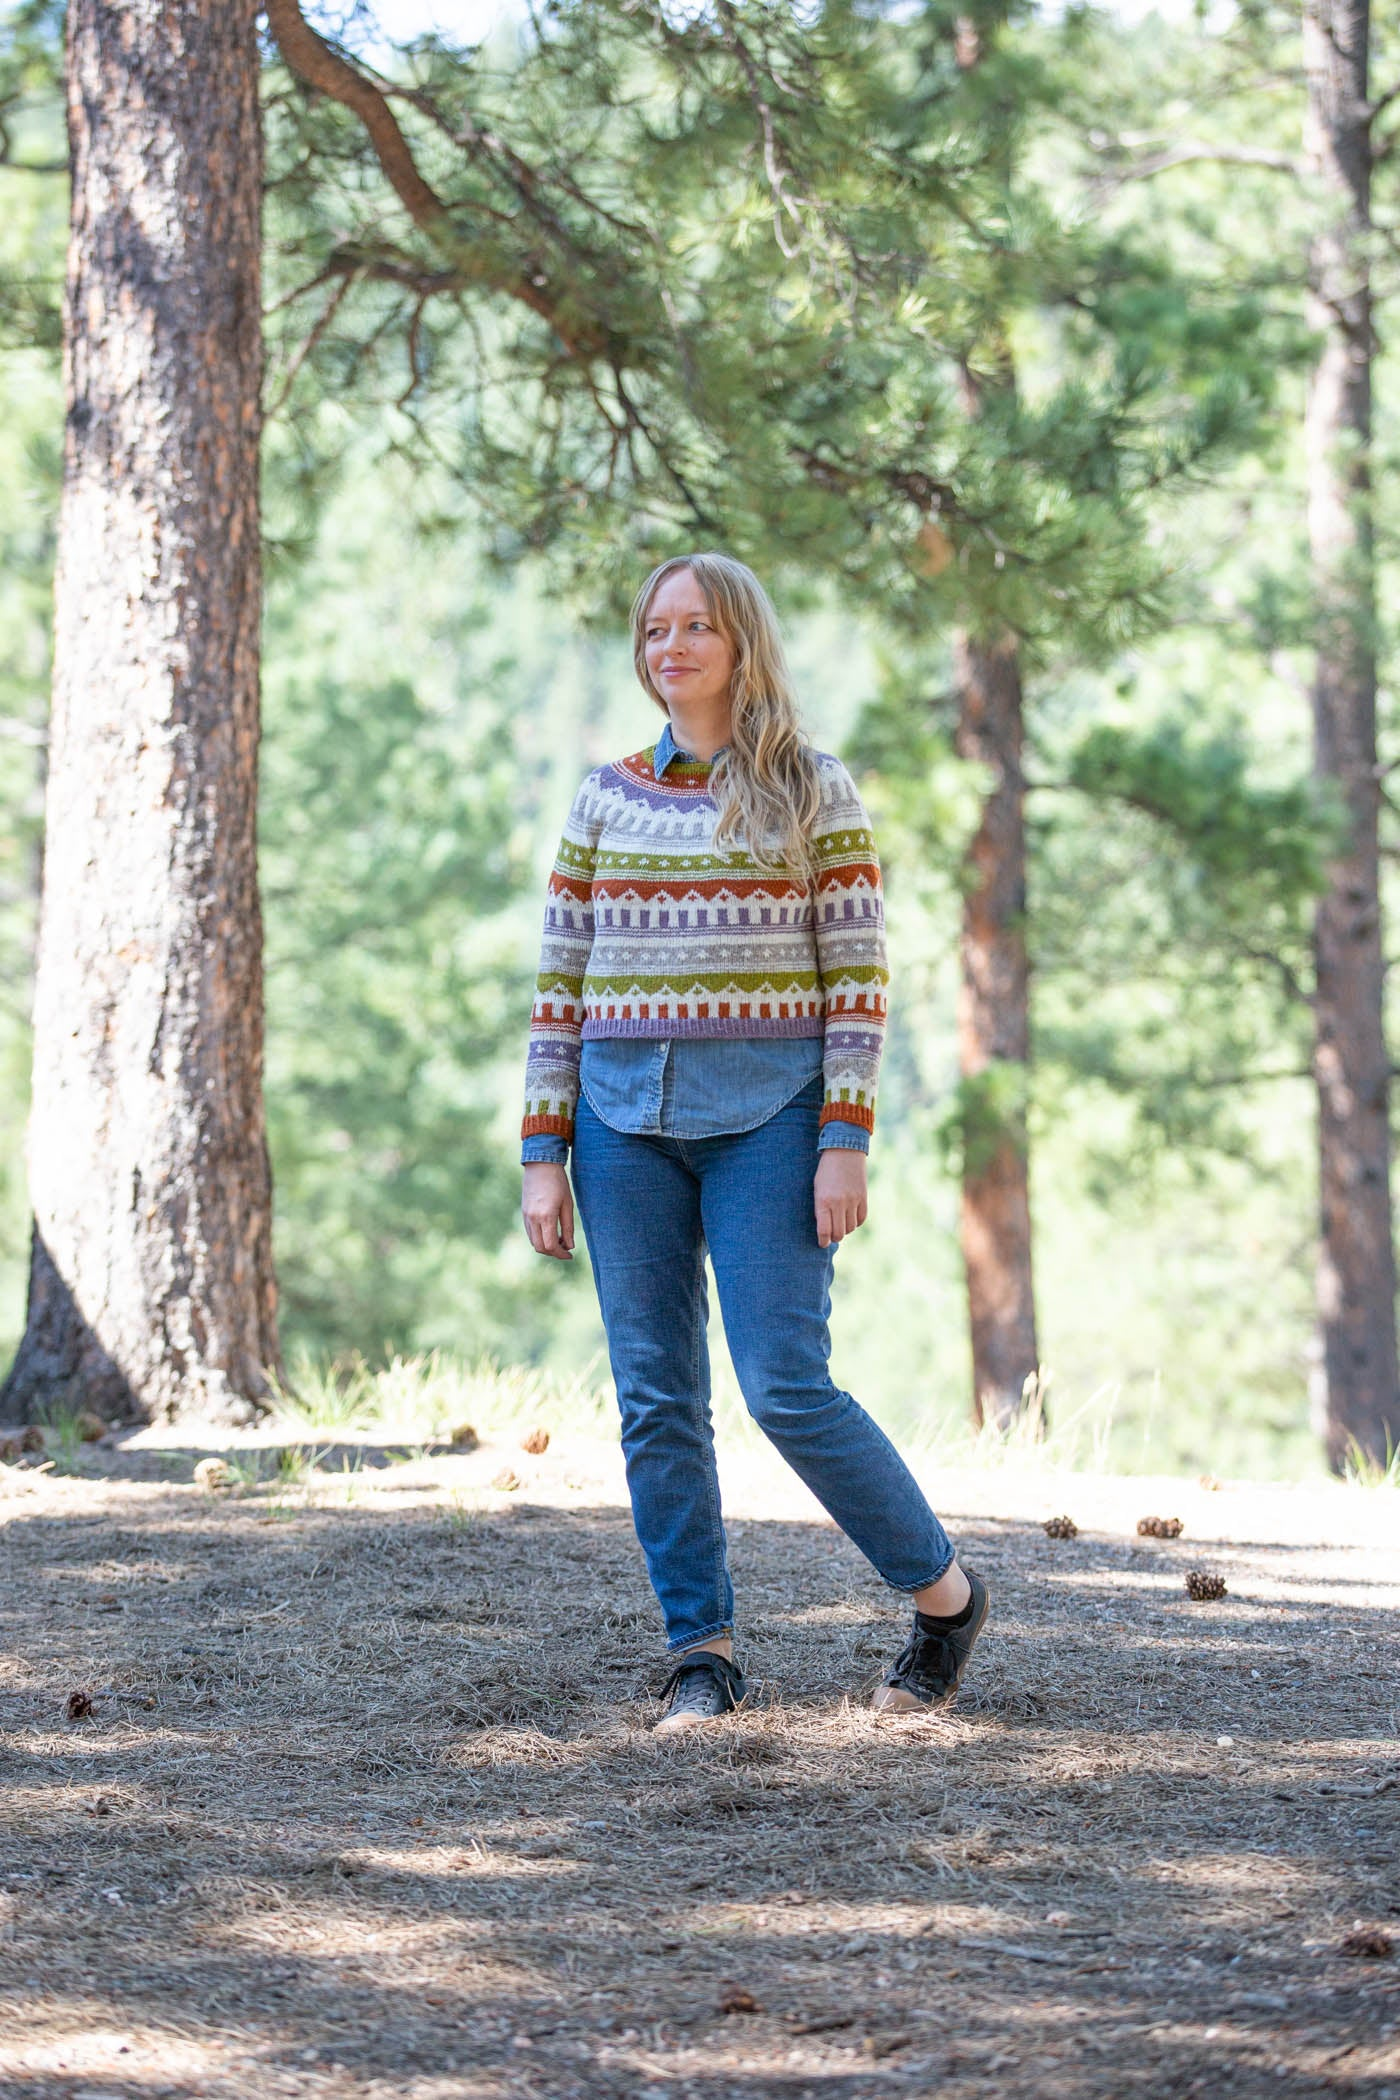 Women standing in evergreen tress facing the camera smiling.  Wearing a multi colored knitted sweater and jeans.